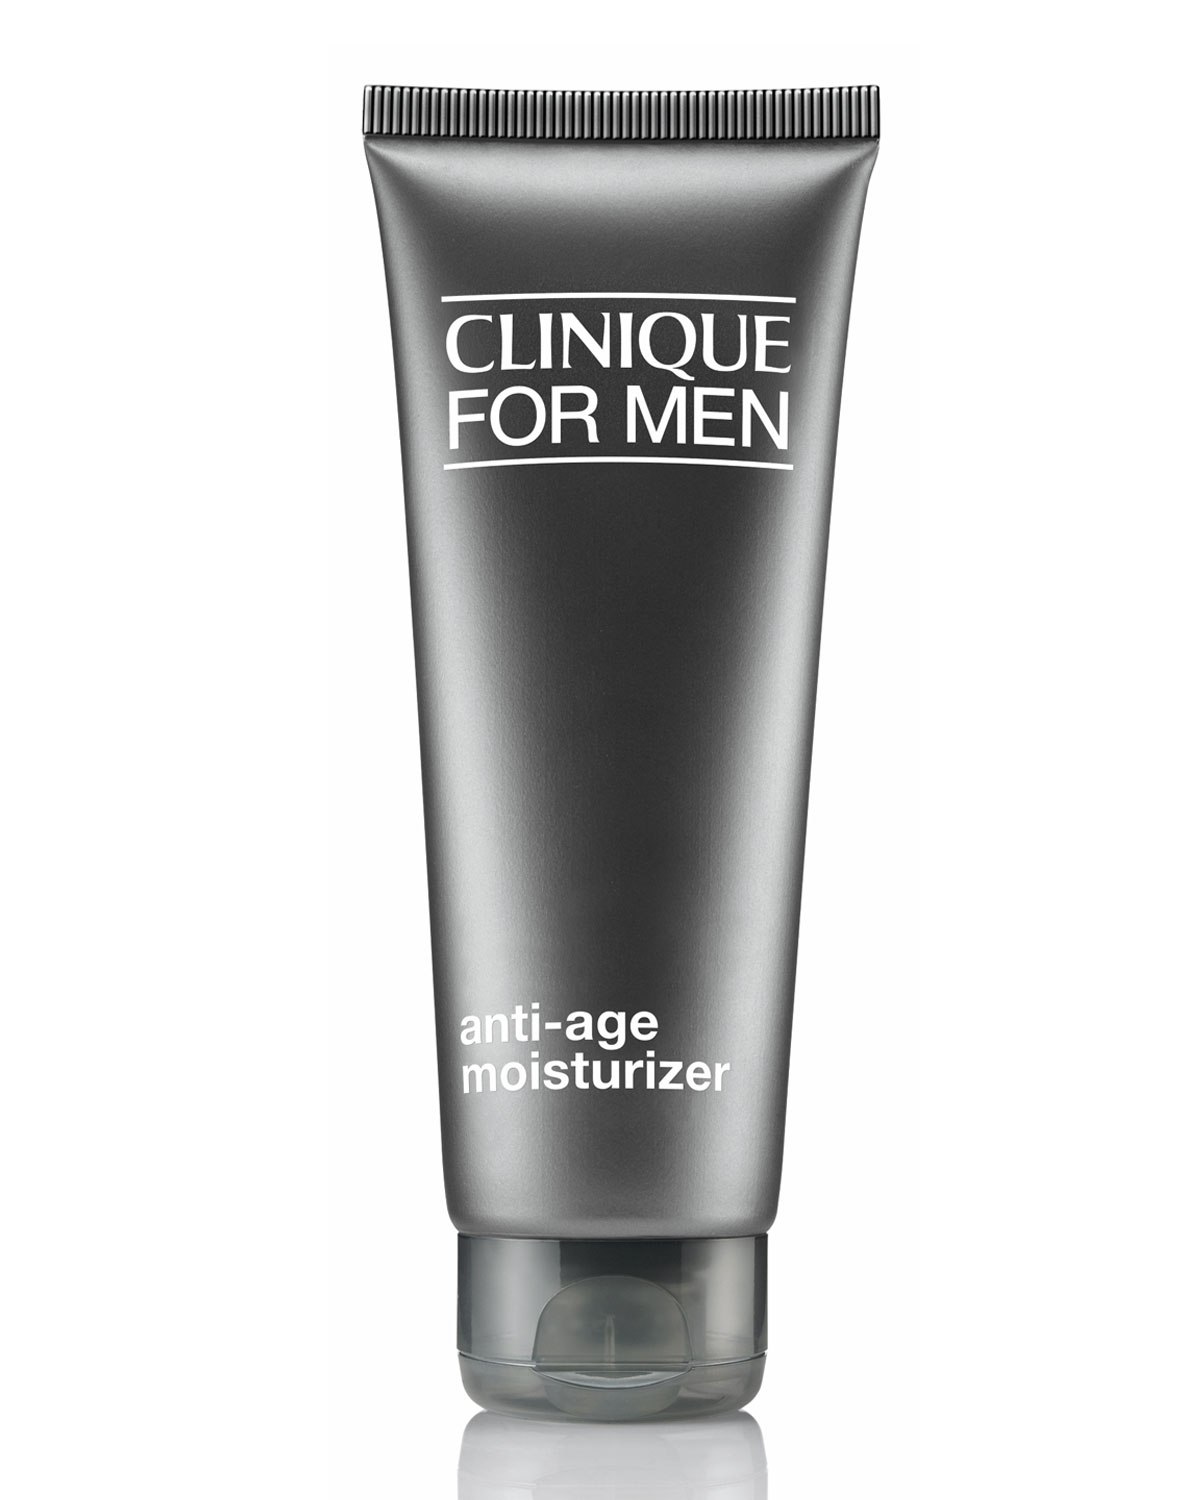 Clinique For Men Anti-Age Moisturizer, 100mL